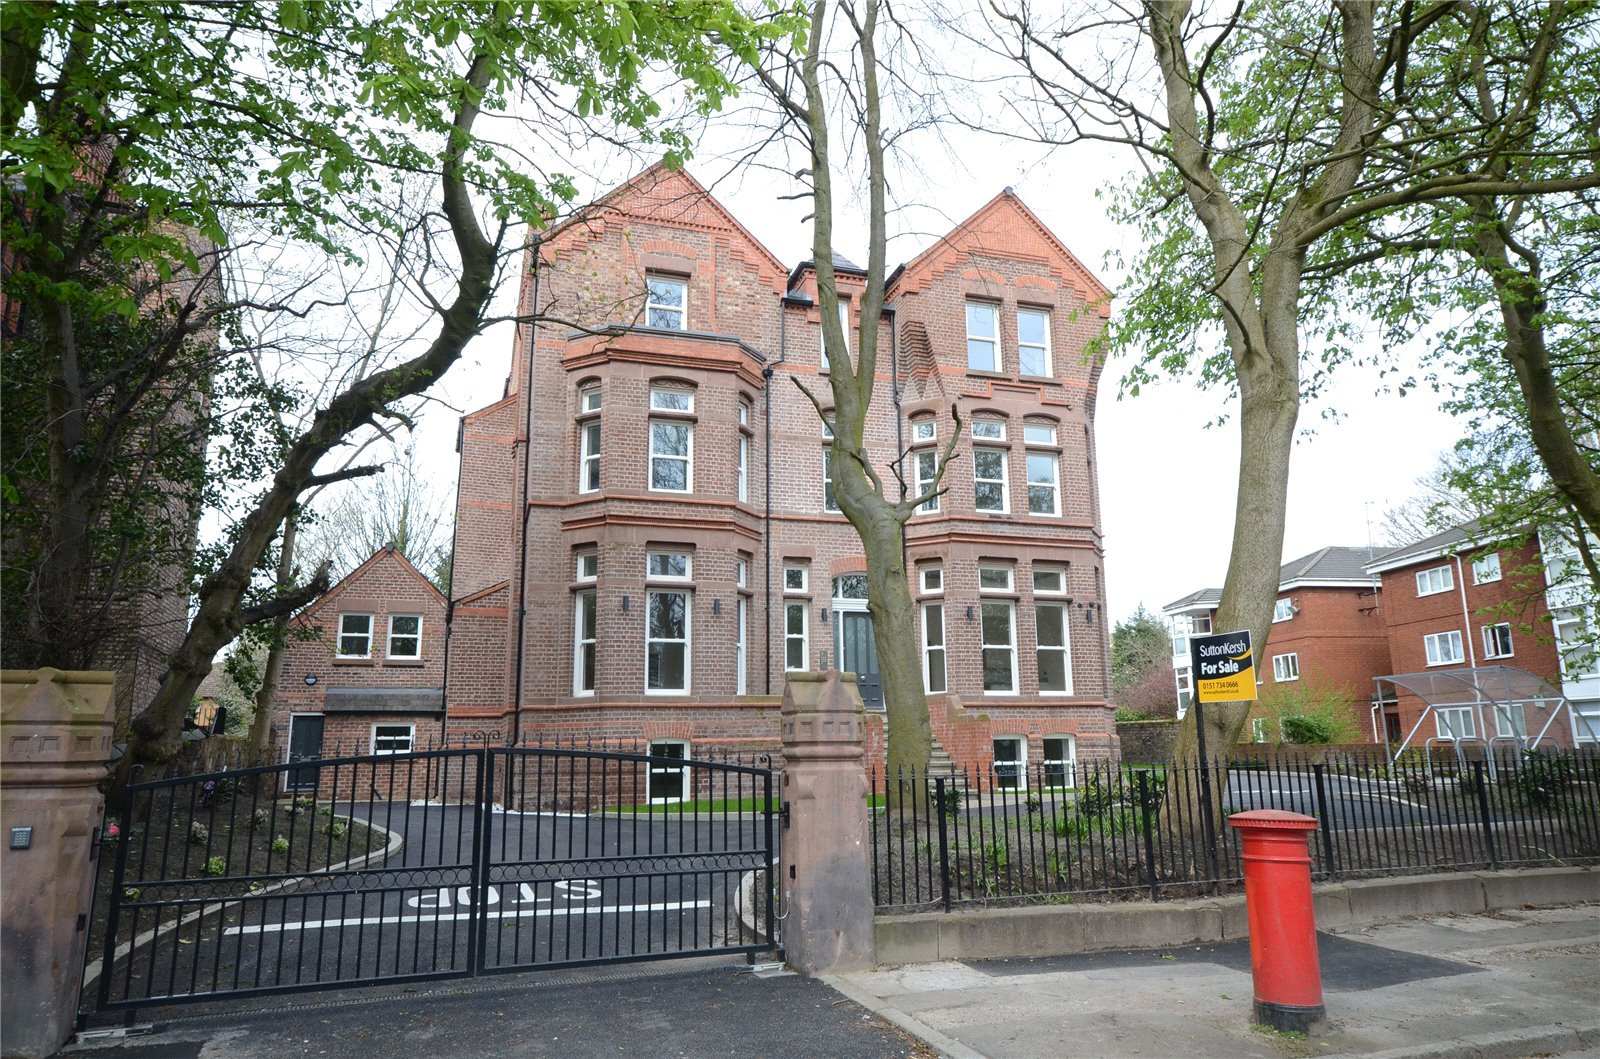 3 Bedrooms Apartment Flat for sale in Livingston Drive North, Aigburth, Liverpool, L17